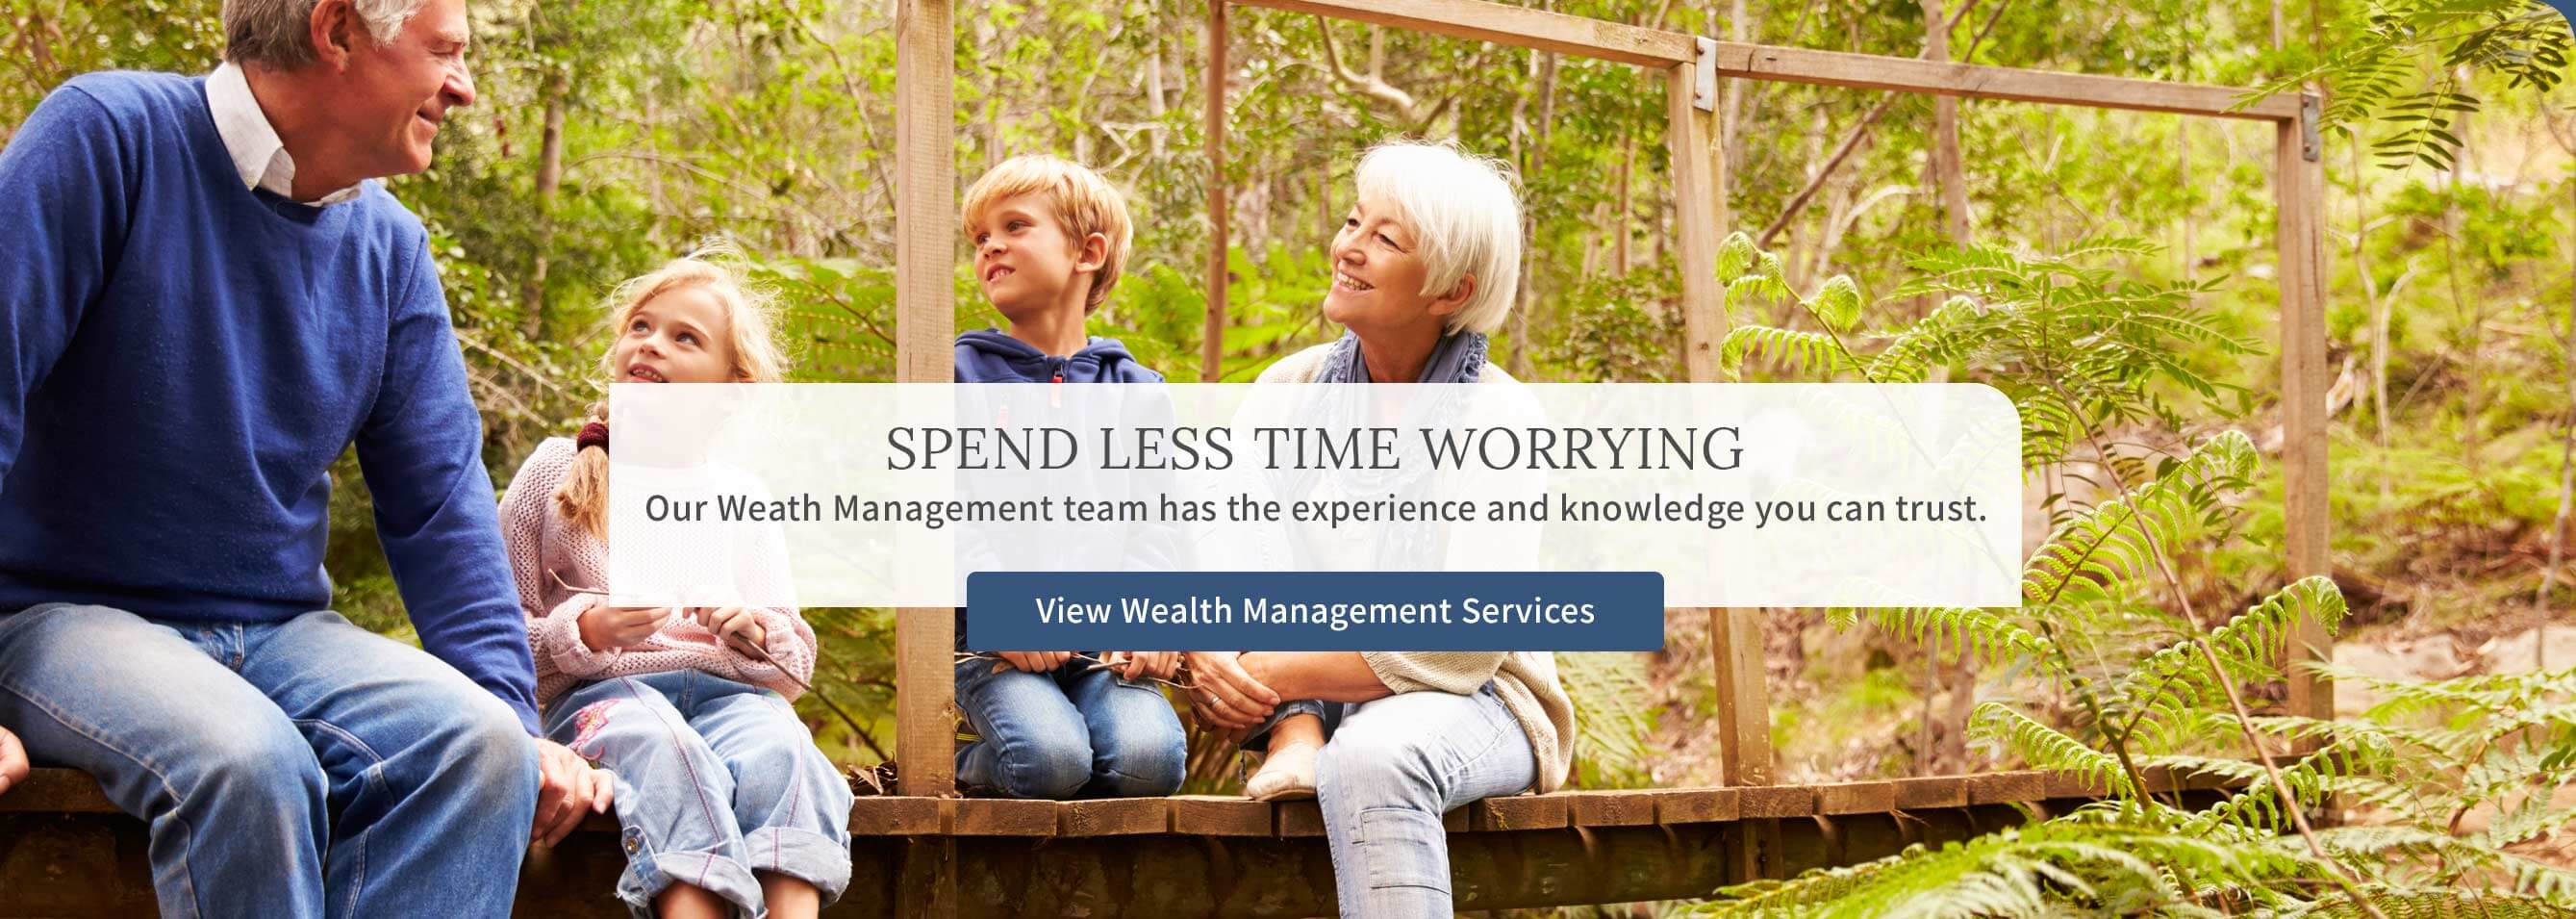 Spend less time worrying. Our Weath Management team has the experience and  knowledge you can trust. View Wealth Management Services